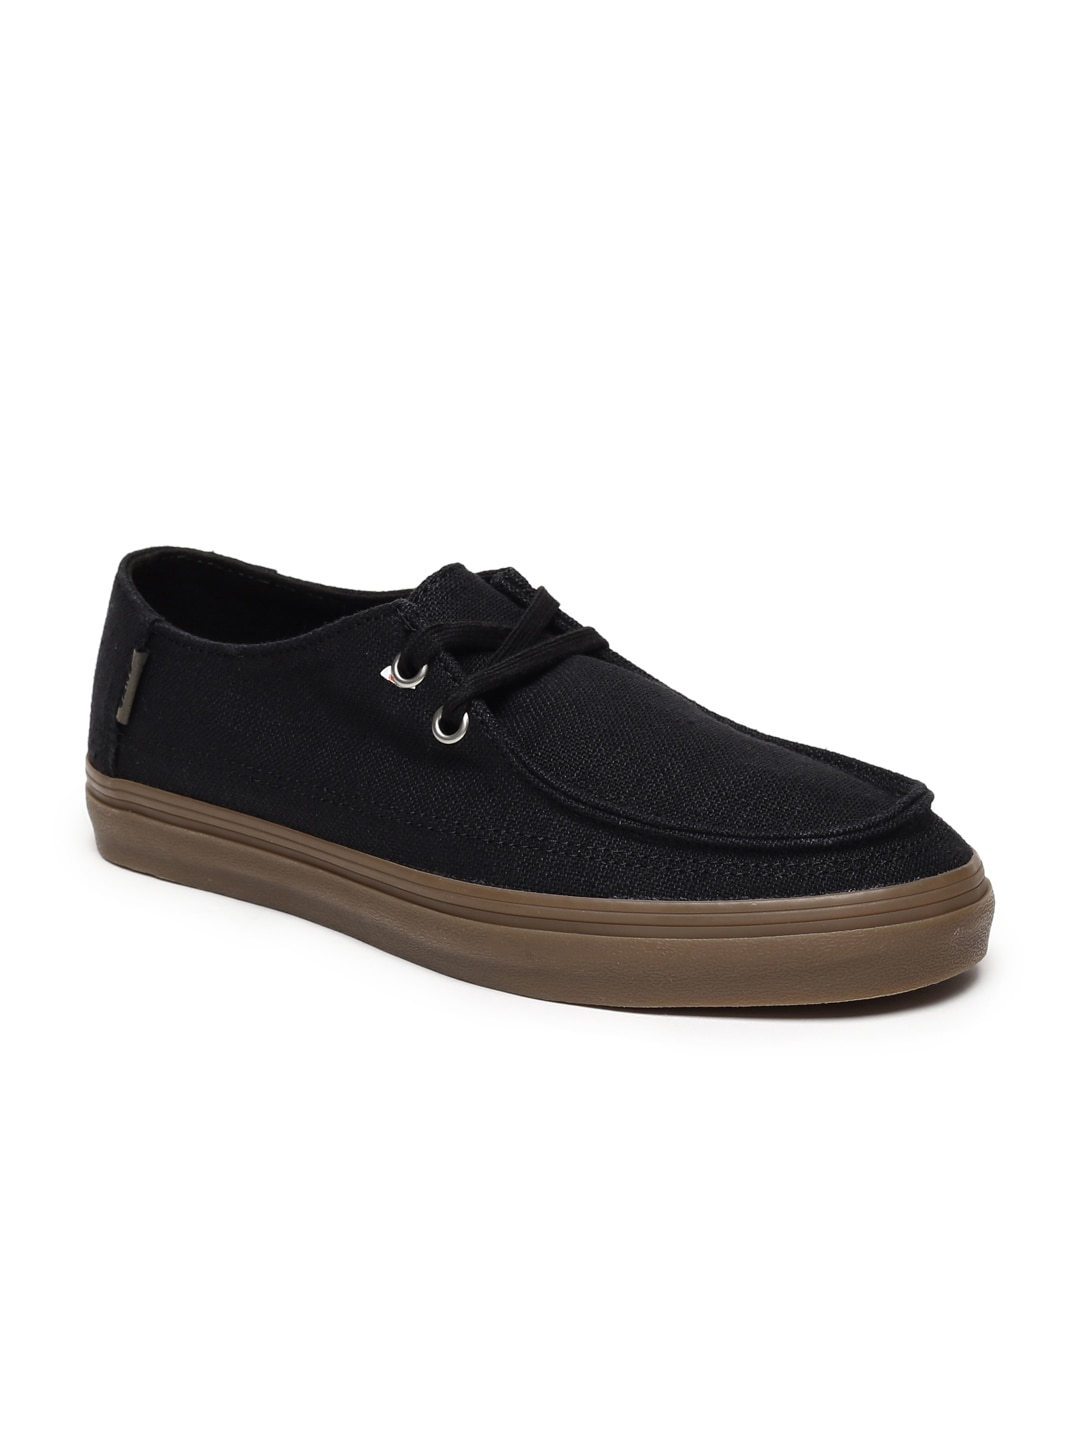 abd9d4617bf9 Casual Shoes